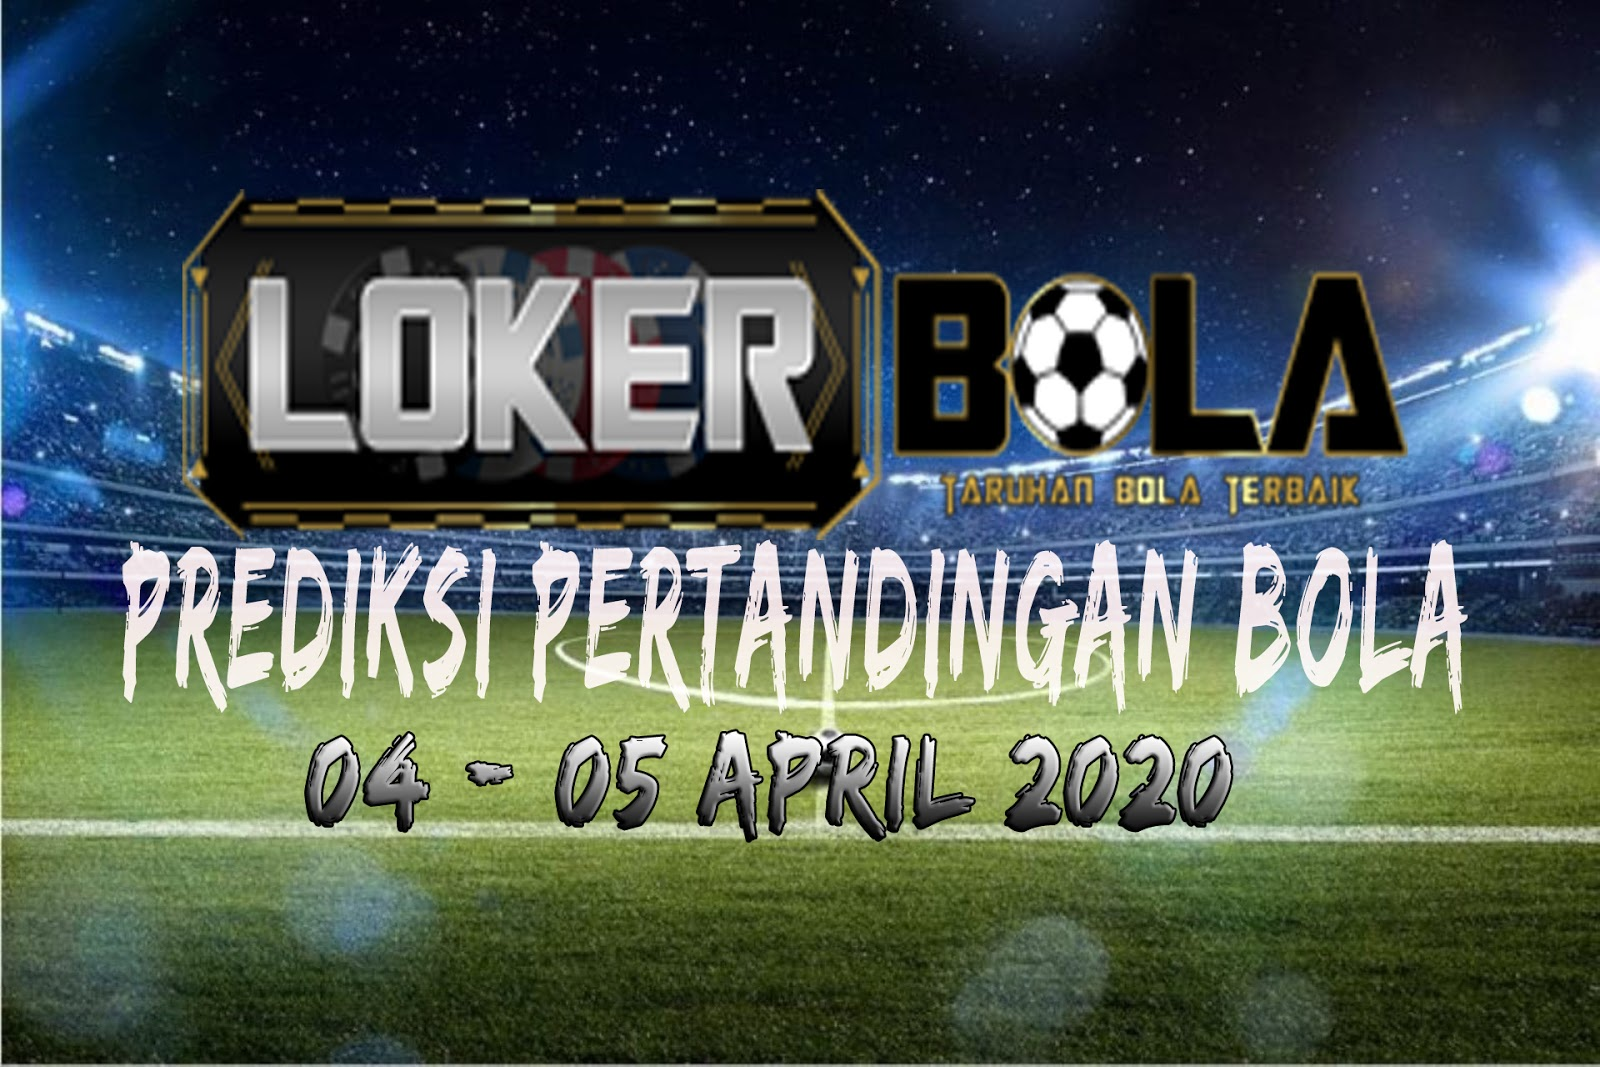 HASIL PERTANDINGAN BOLA 03 – 04 APRIL 2020